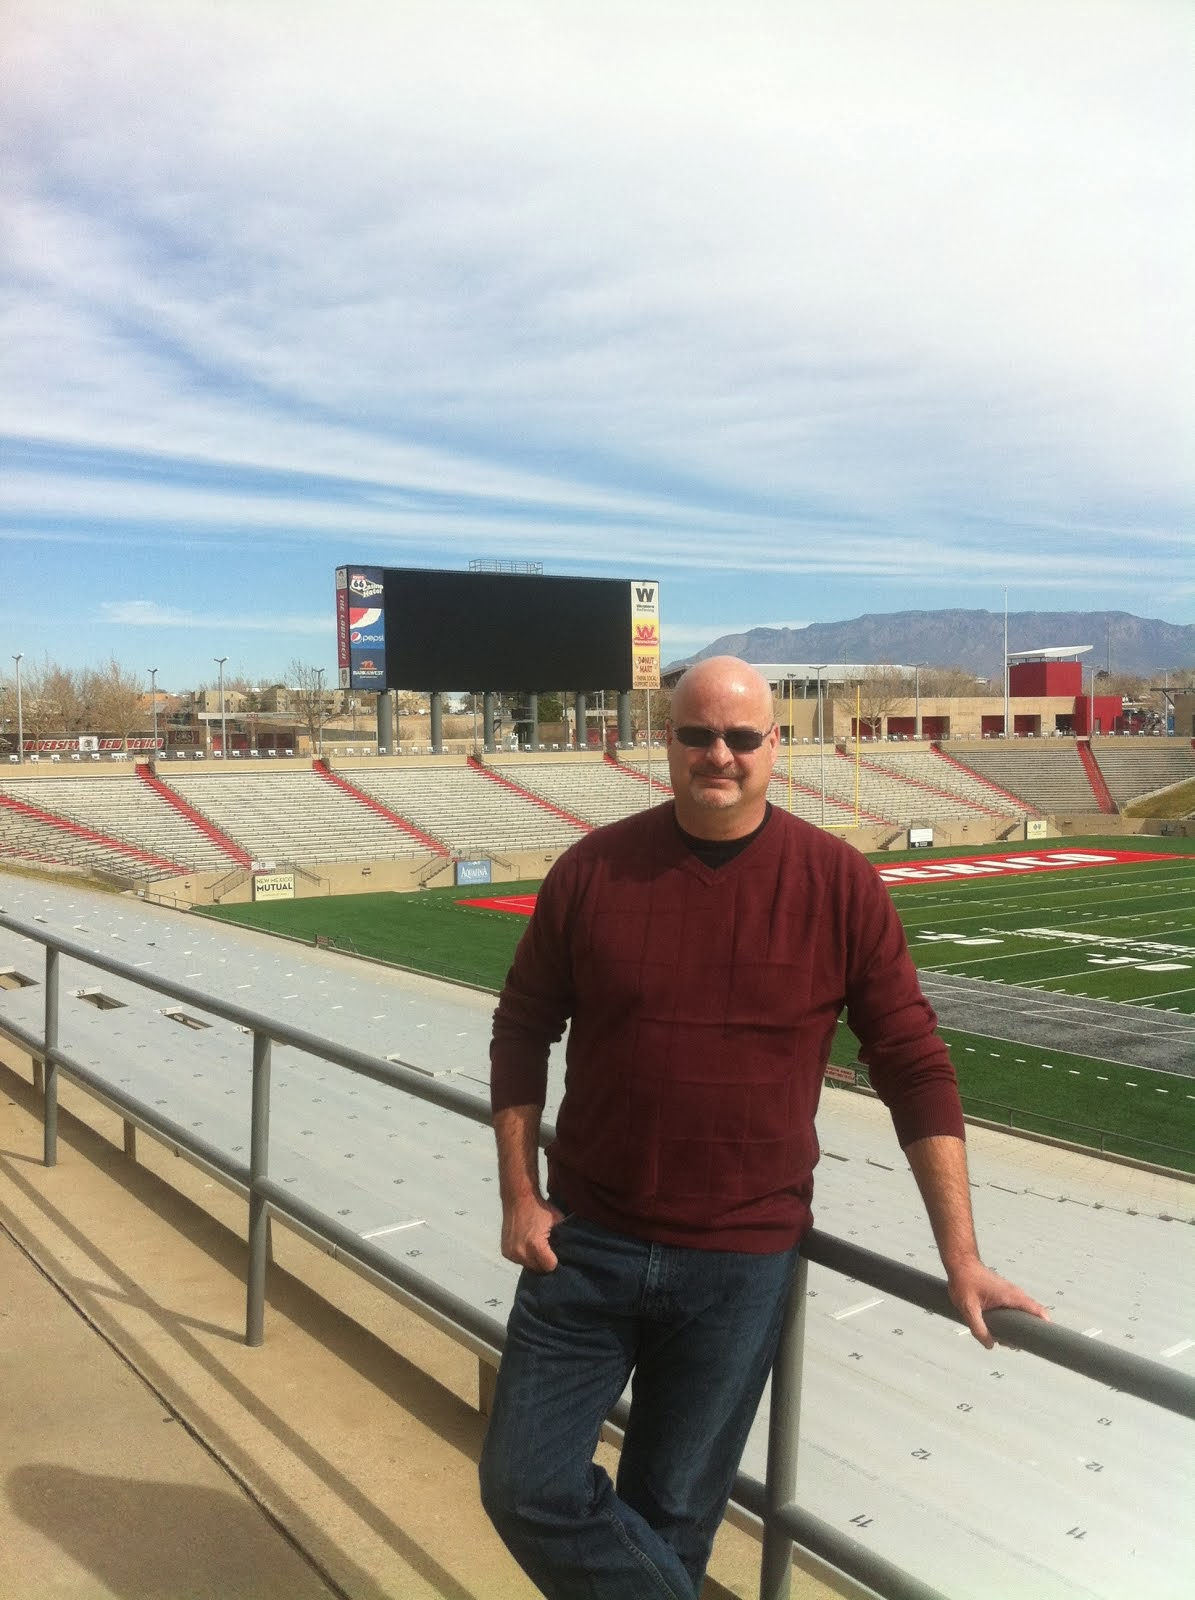 University Stadium, University of New Mexico